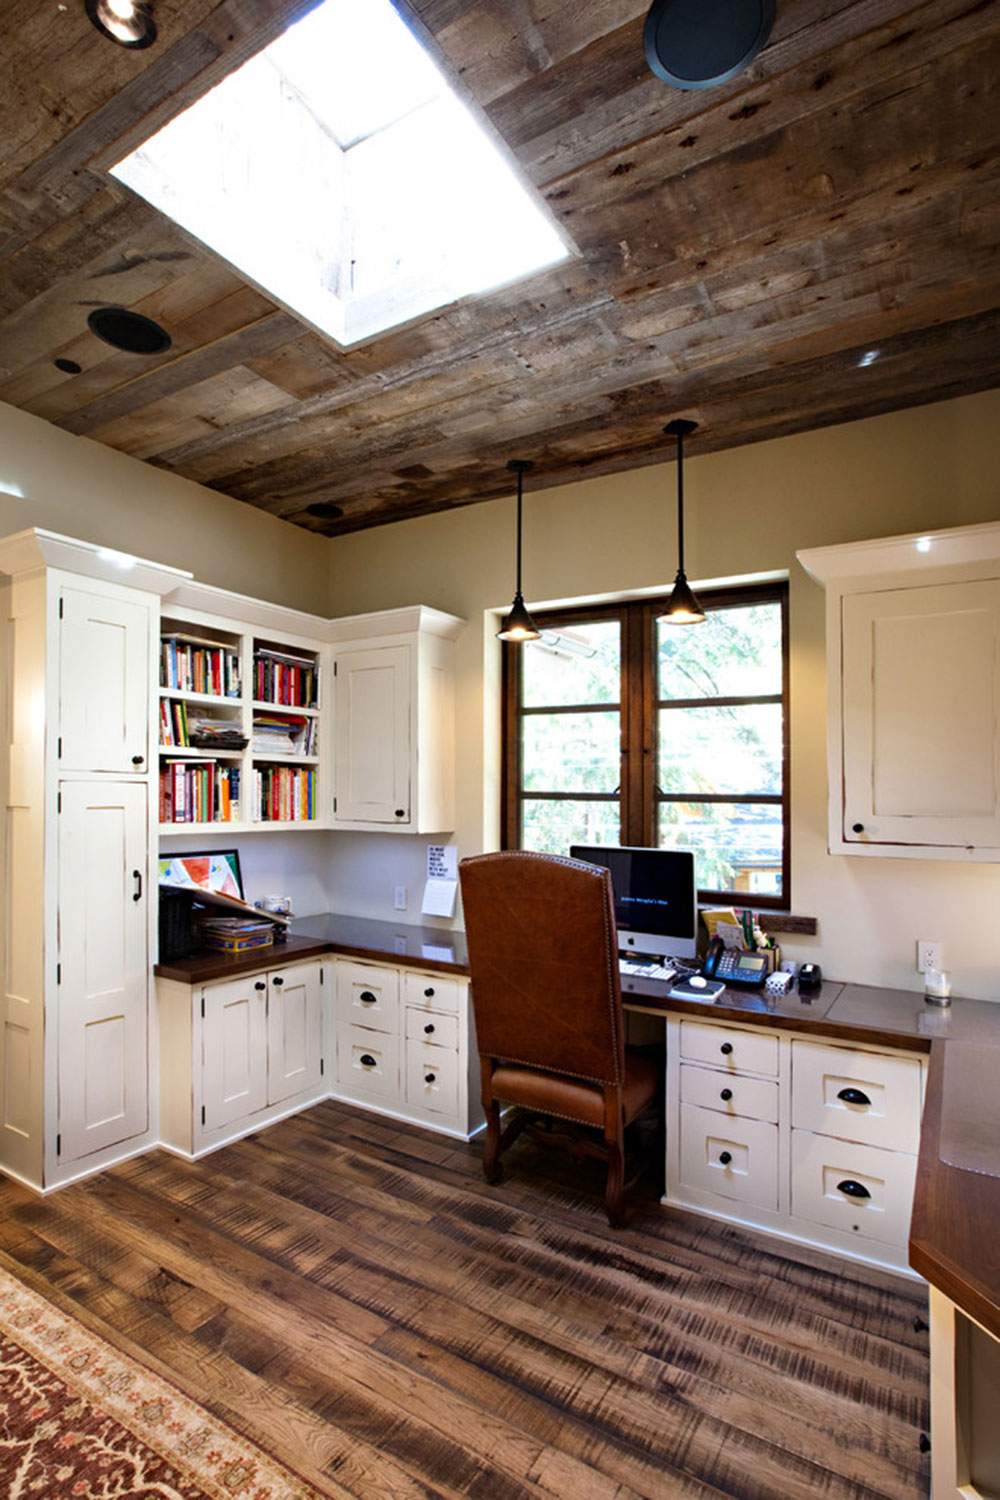 Charmant Improve Your Work Day With These Home Office